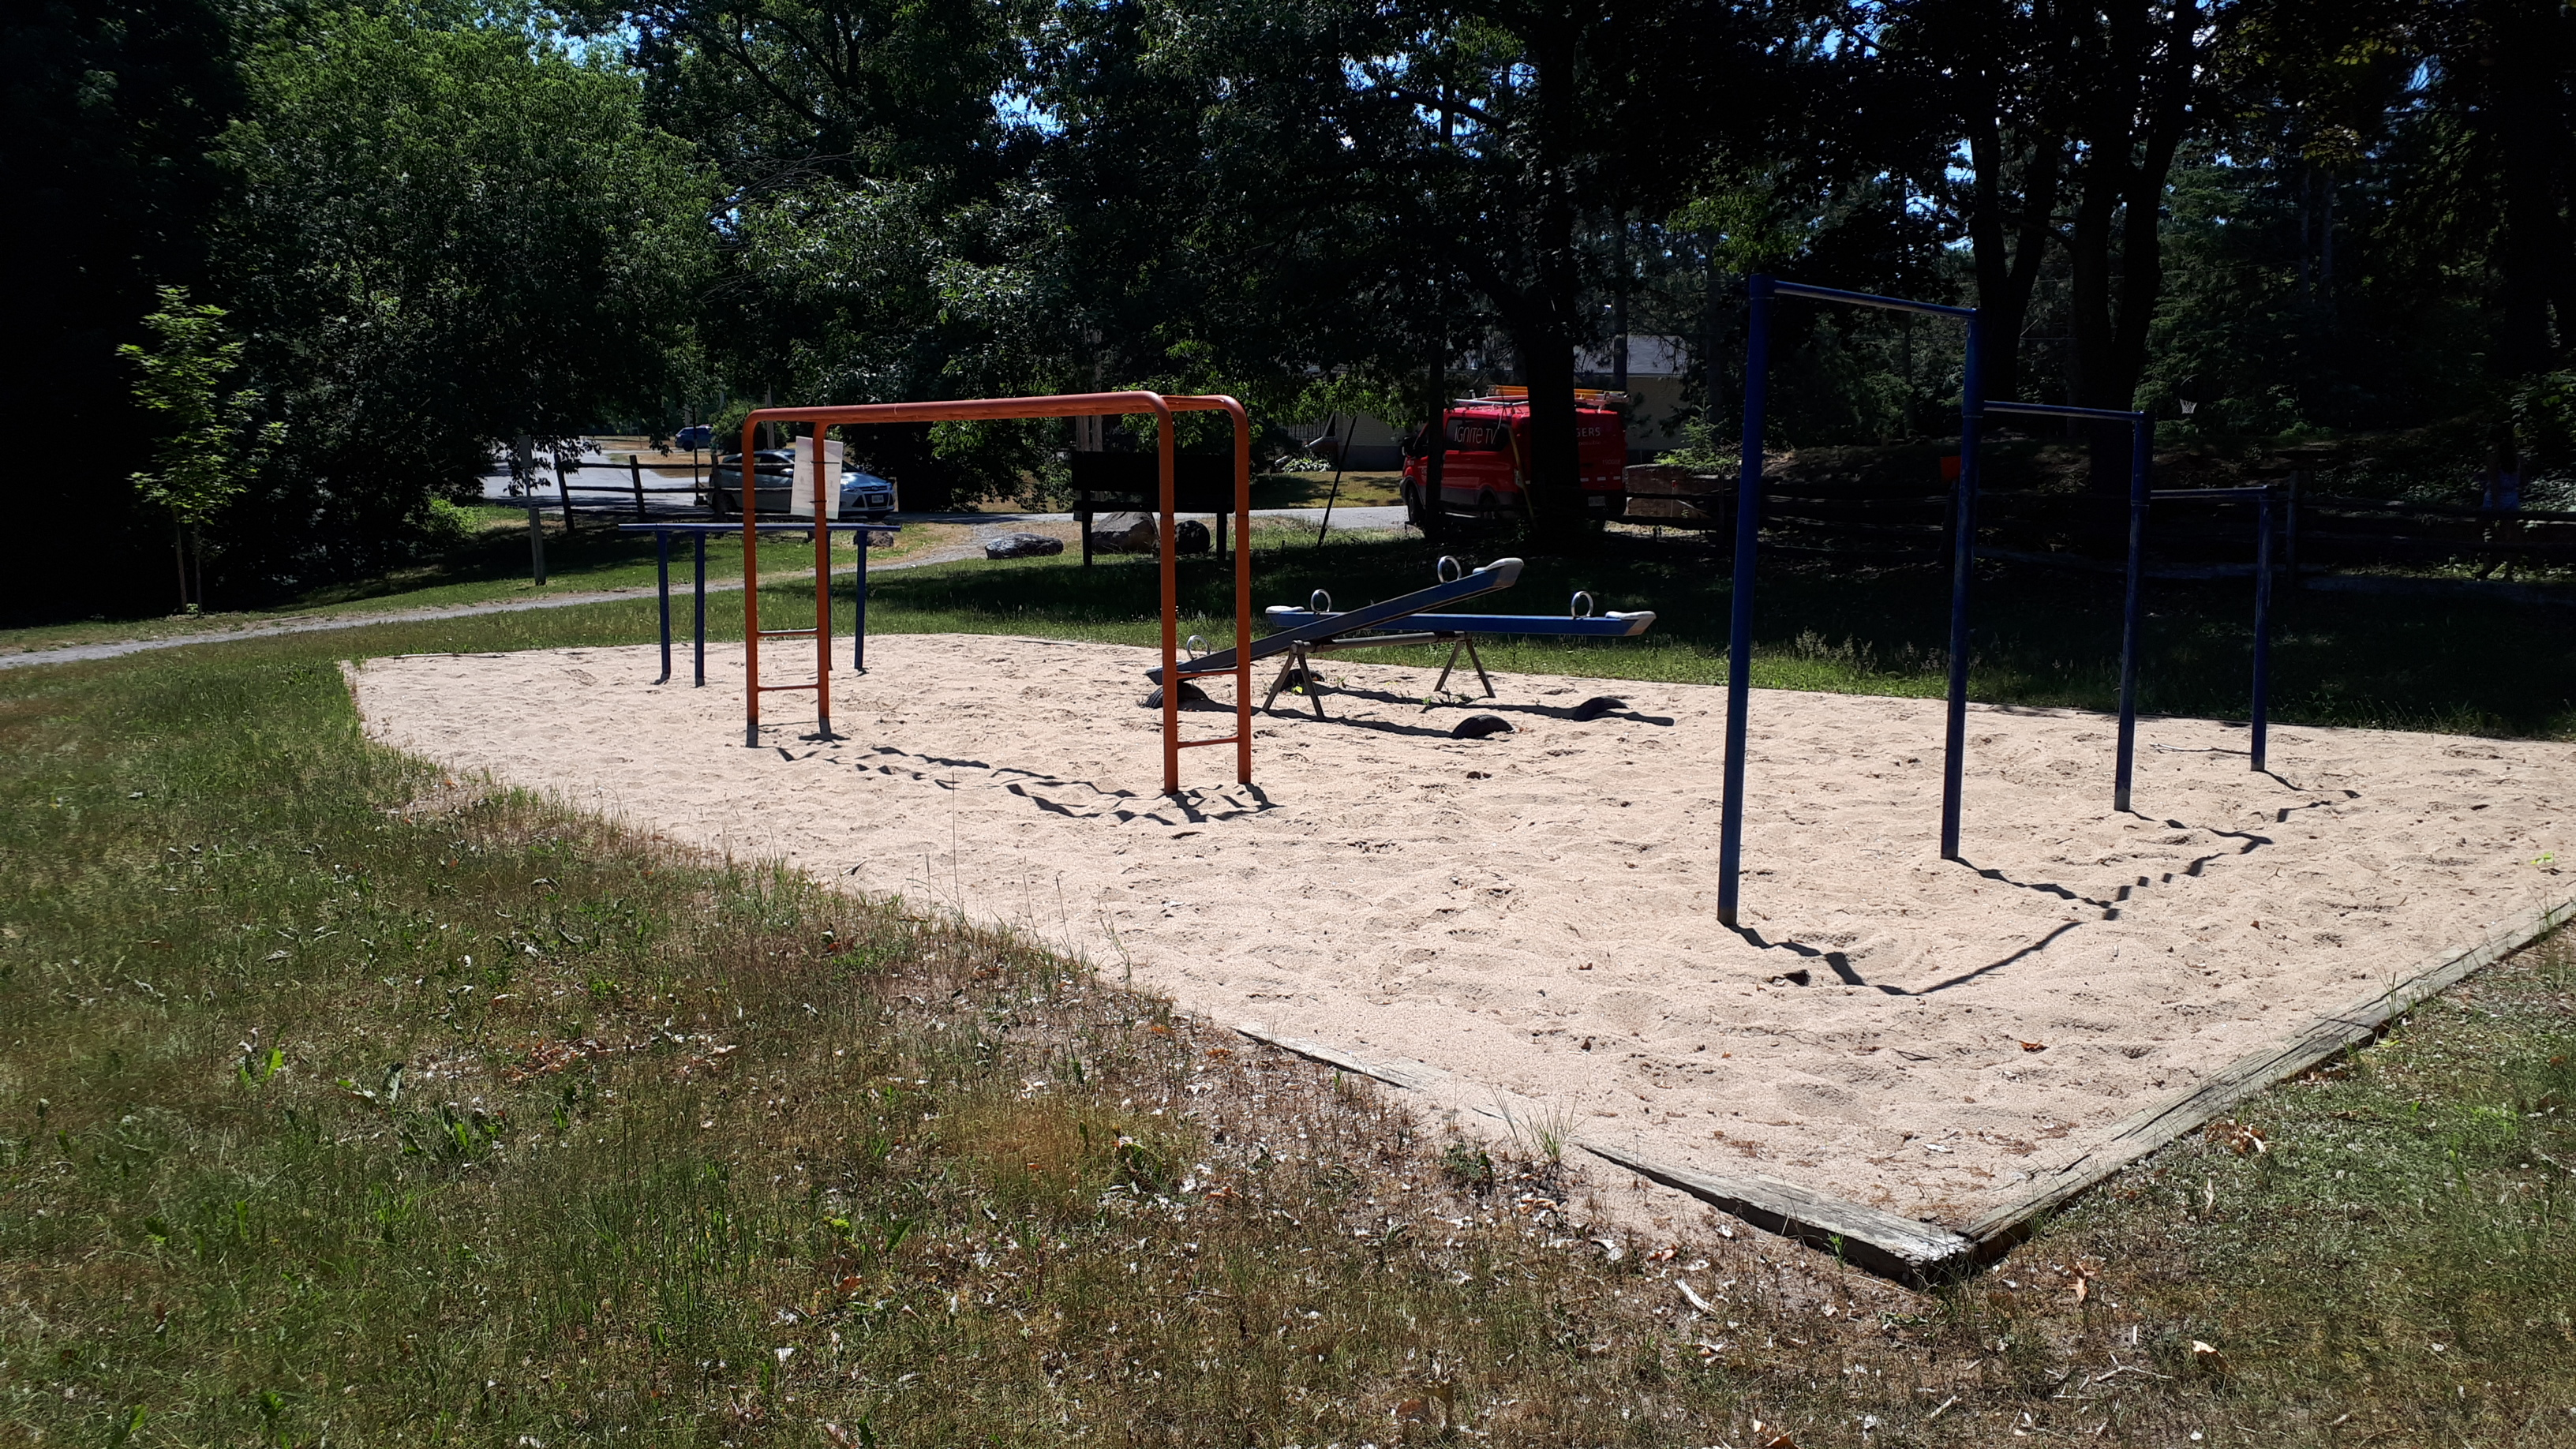 Image of the existing play equipment in Green Briar Park.